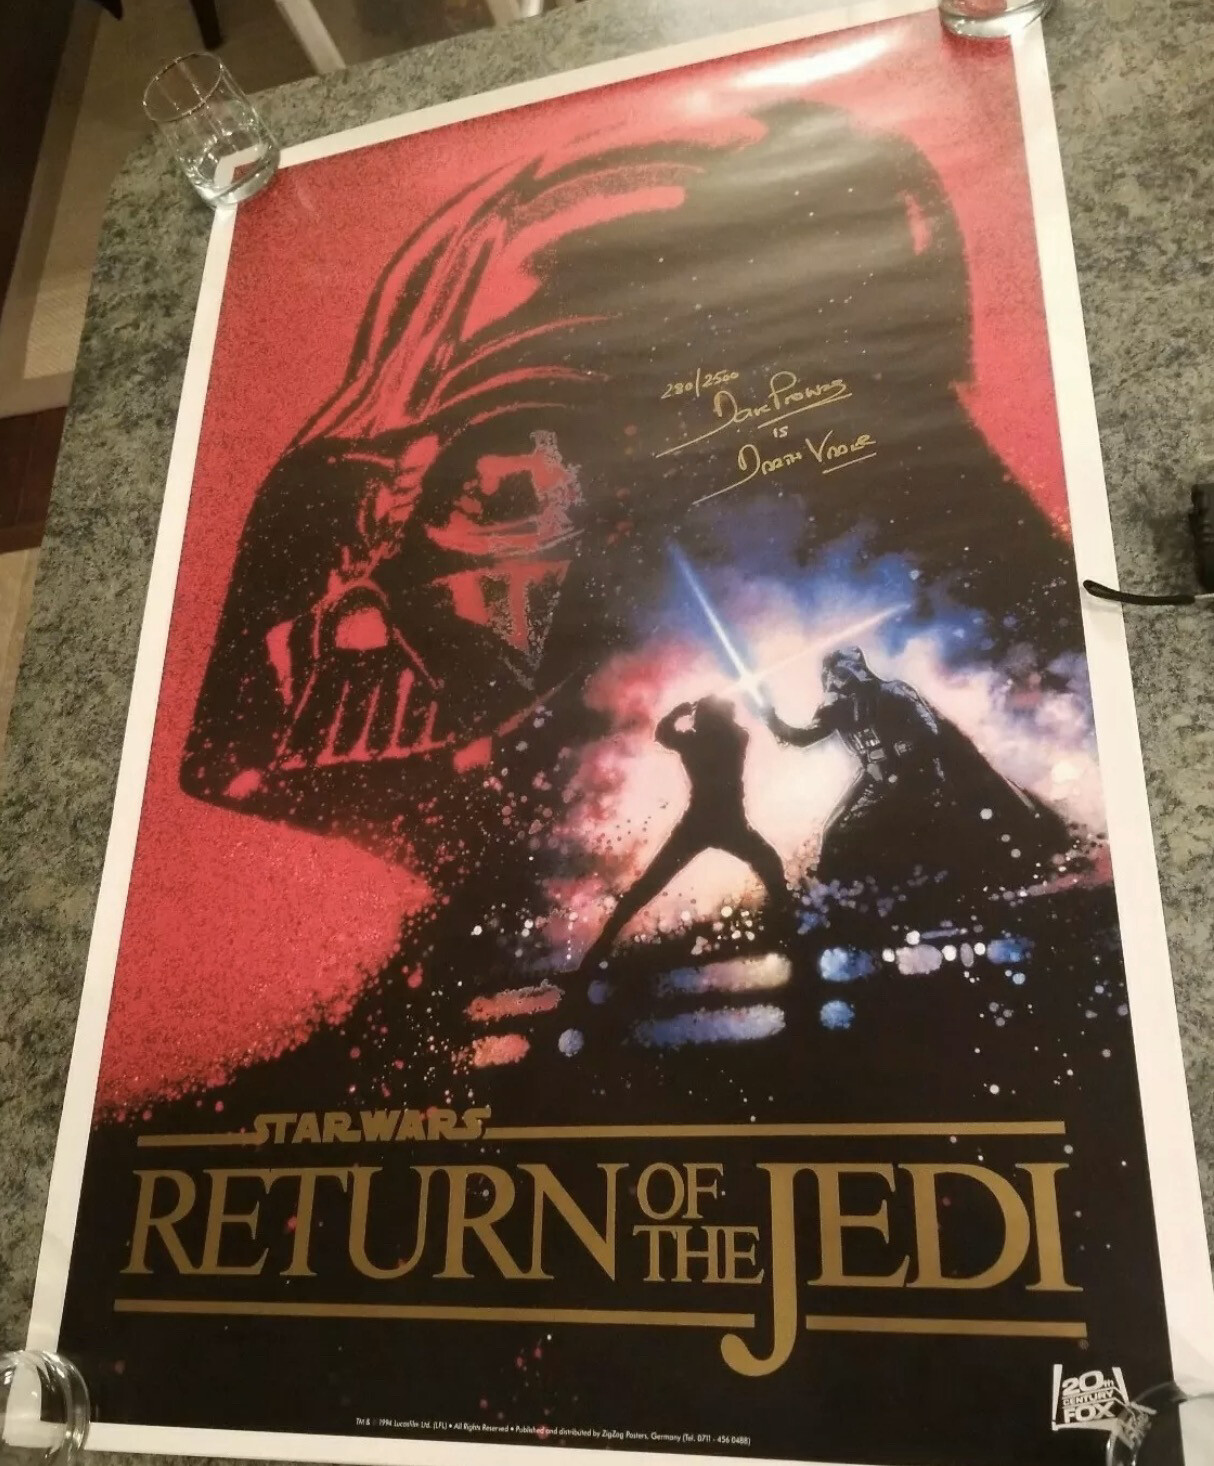 27x41 POSTER SIGNED BY DAVE PROWSE